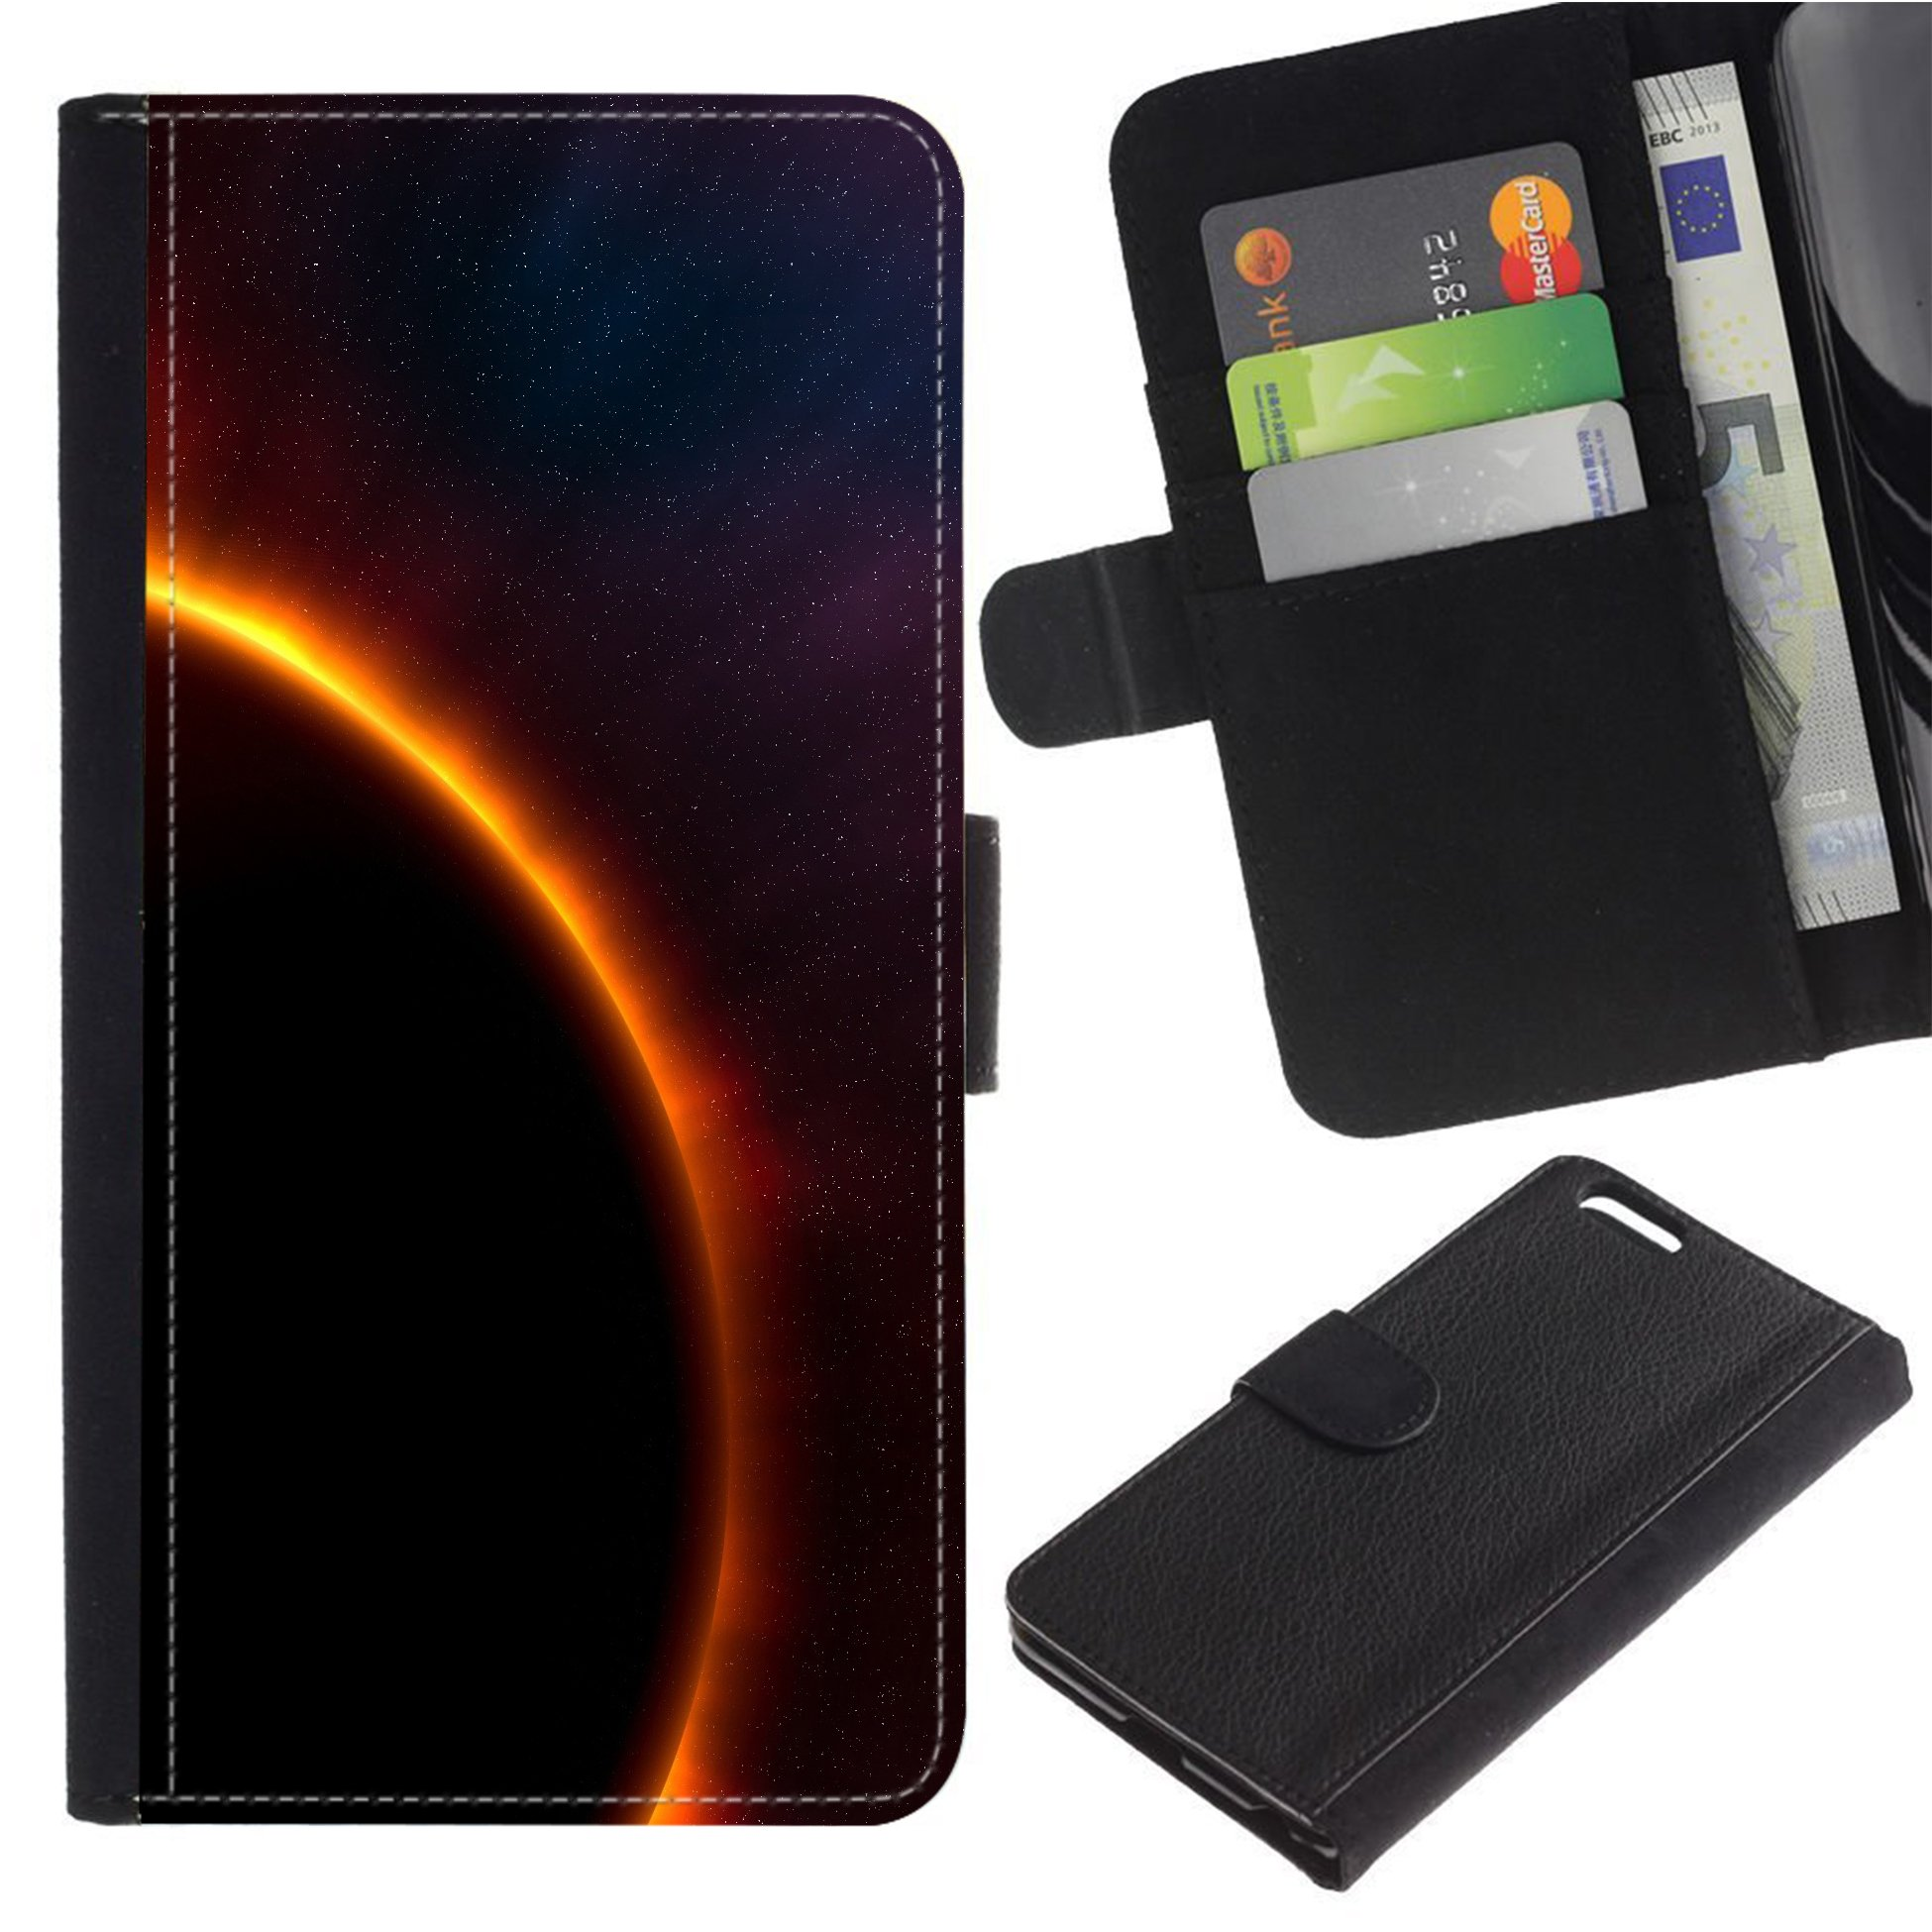 [Solar Eclipse] For SAMSUNG Galaxy S3 III/i9300/i747 Flip Leather Wallet Holsters Pouch Skin Case